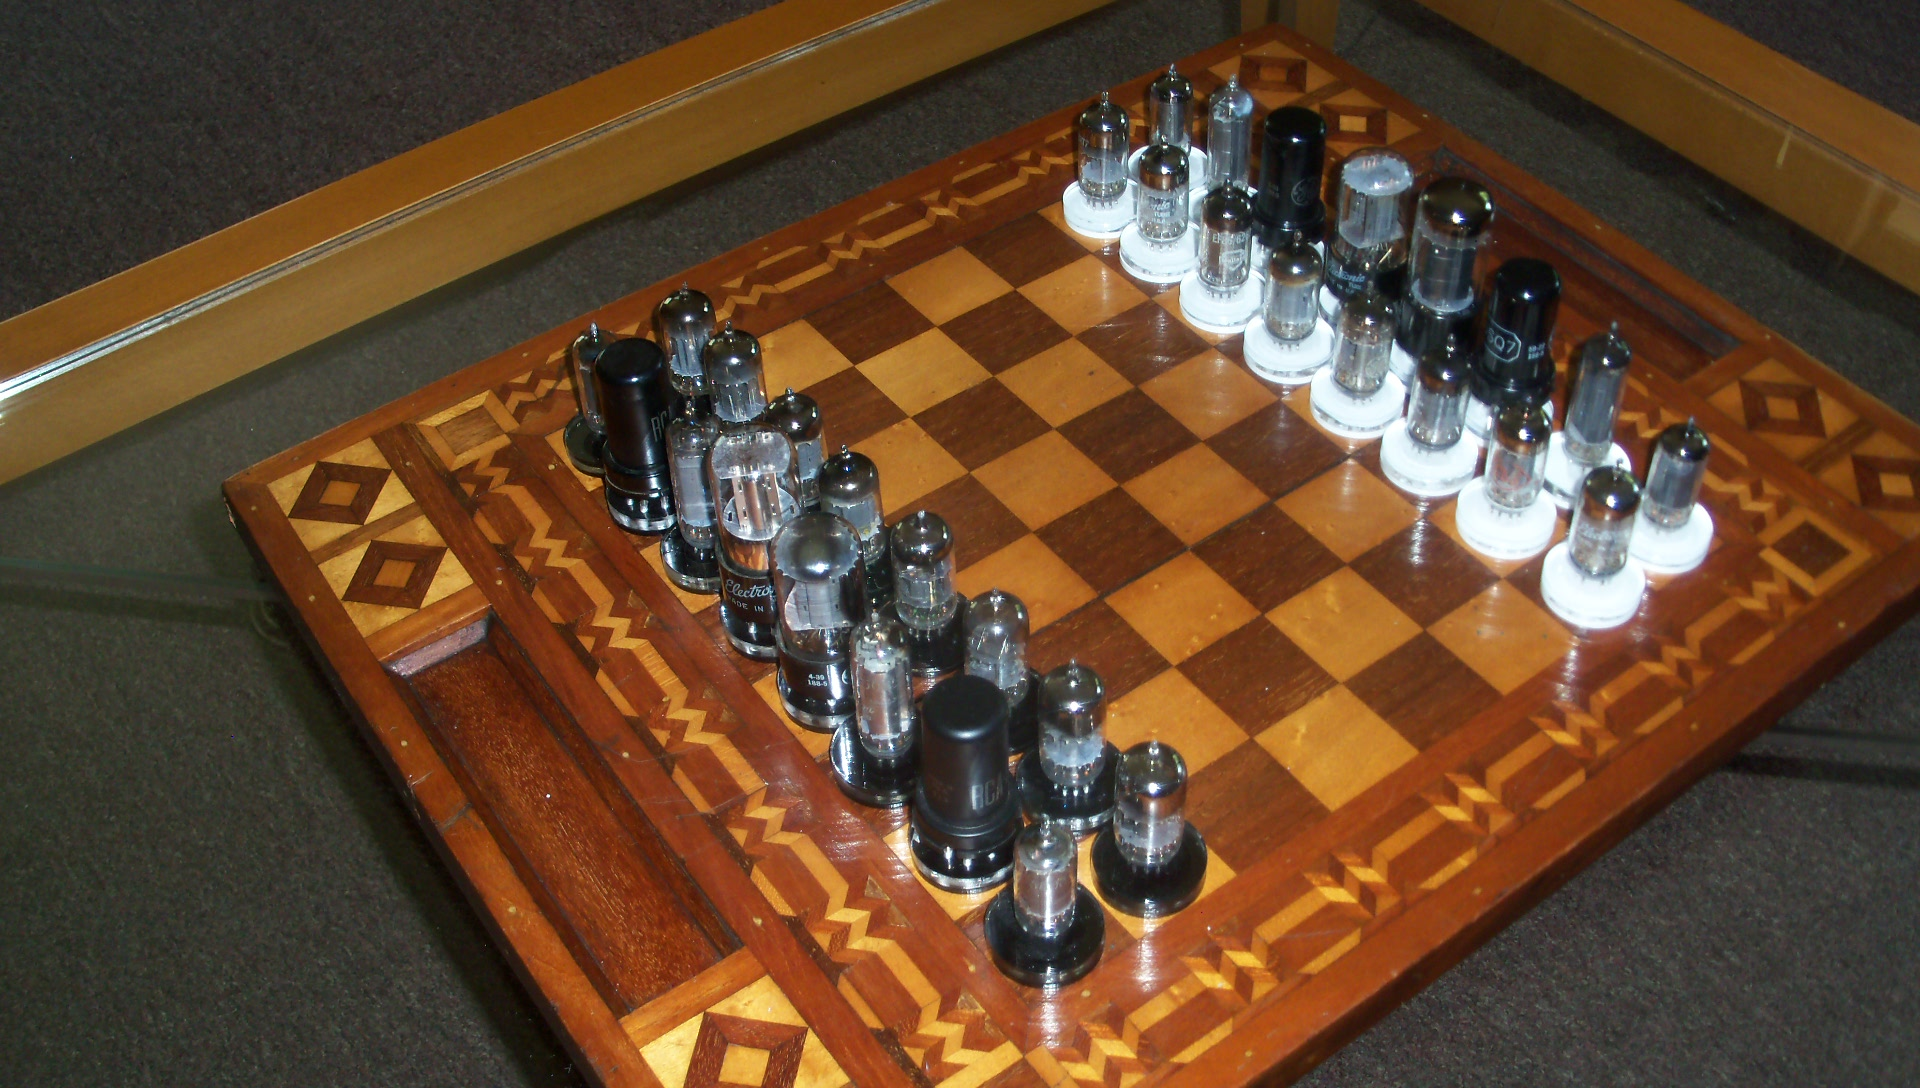 Chess Board Sale Handmade Folk Art Chess Set 1940 39s Vaccum Tubes And Antique